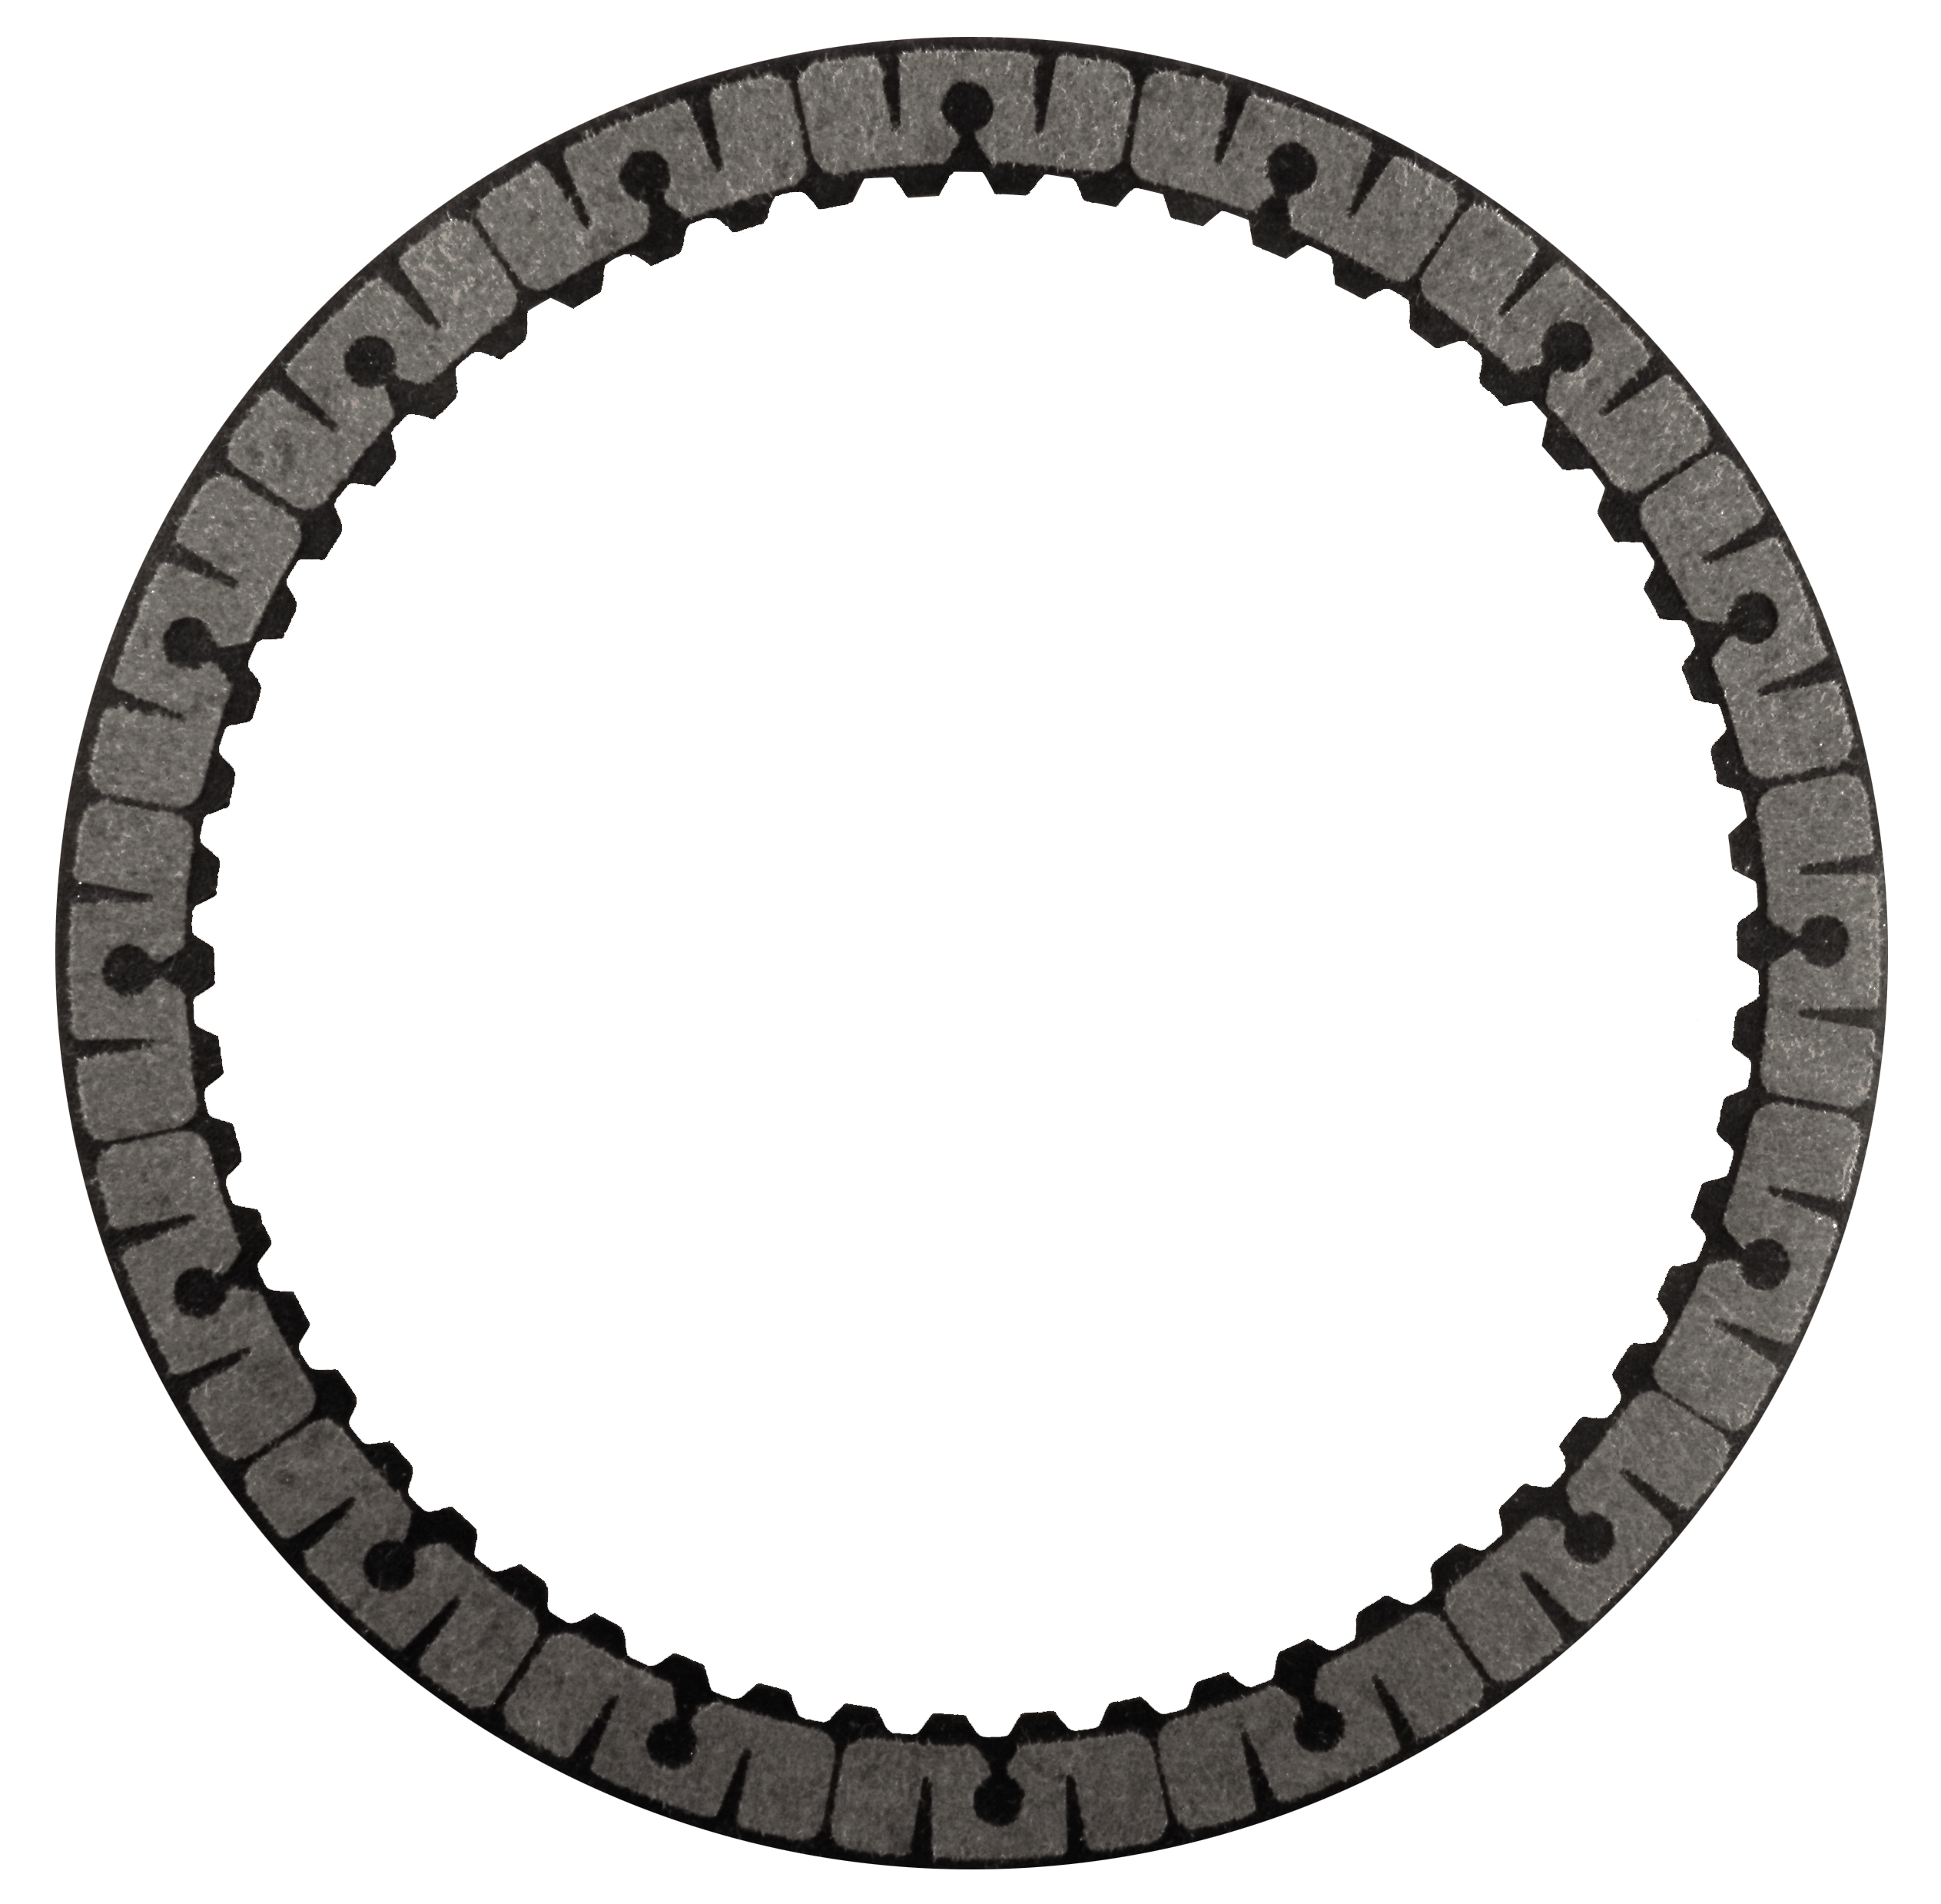 R572716 | 2001-ON Friction Clutch Plate High Energy C3 3, 5 Reverse (Segmented) High Energy